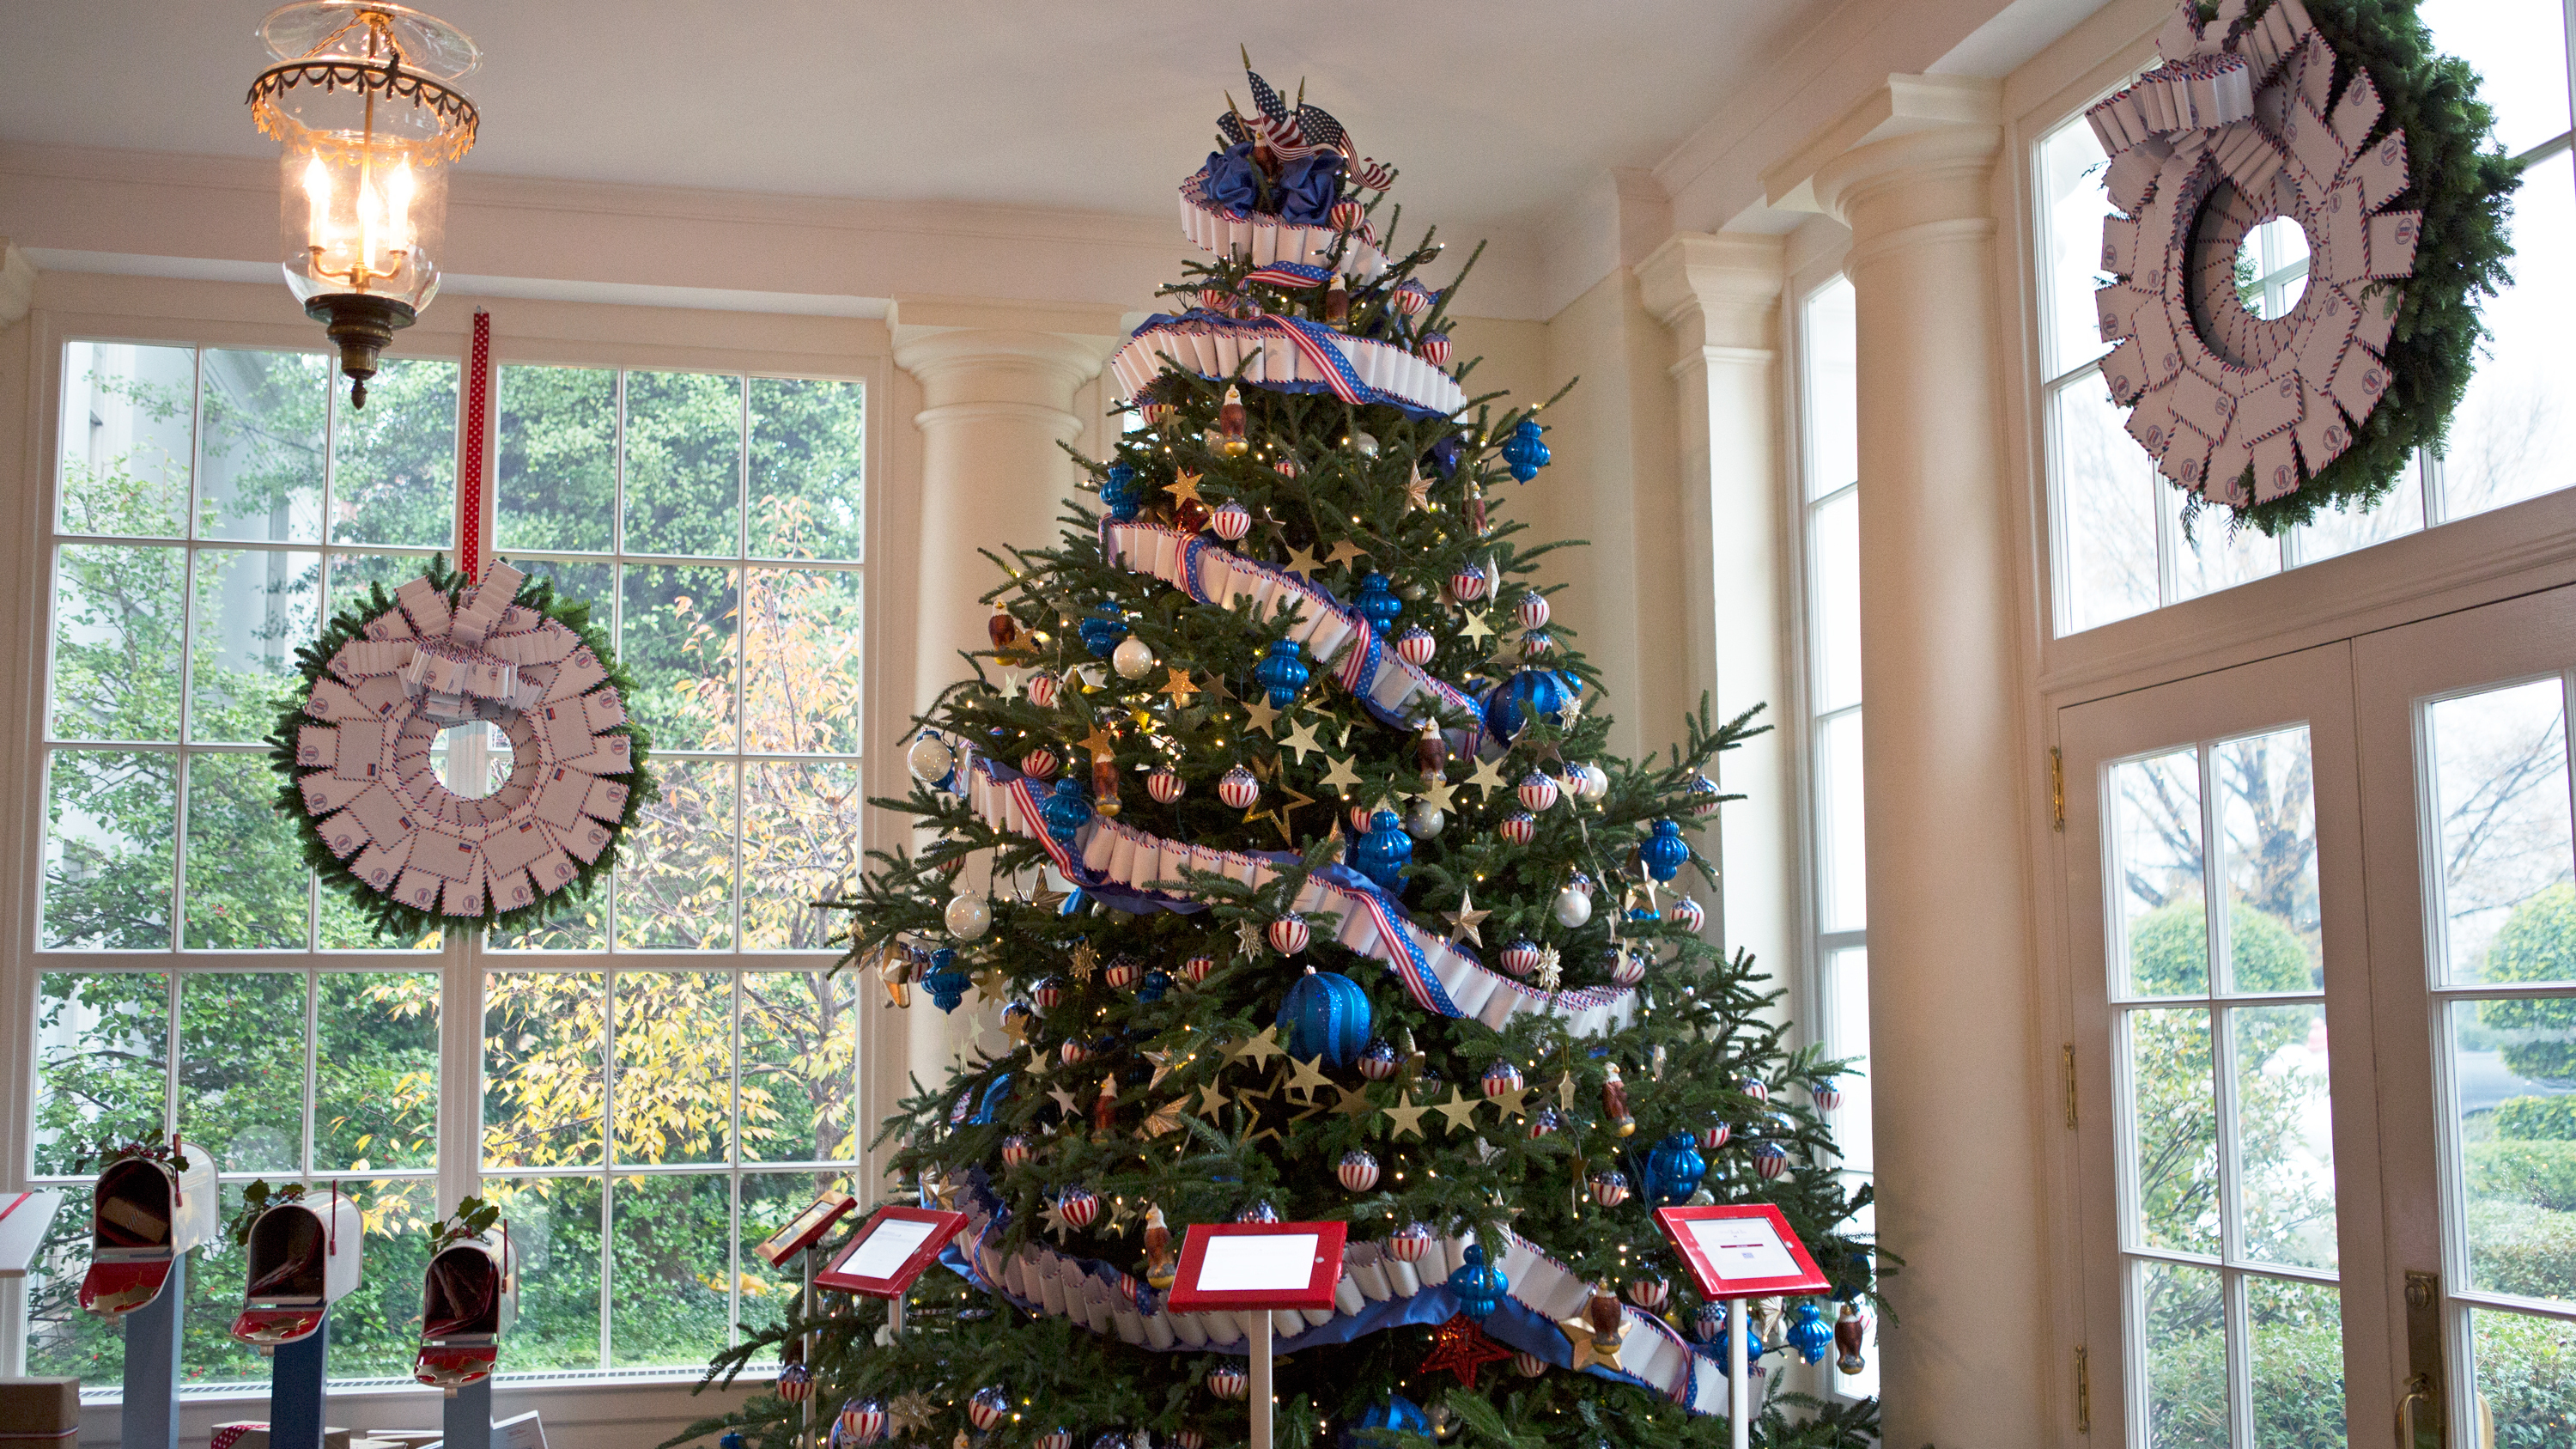 Christmas At The White House, Where Youu0027ll Want To Hang That Snowflake Just  Right : NPR